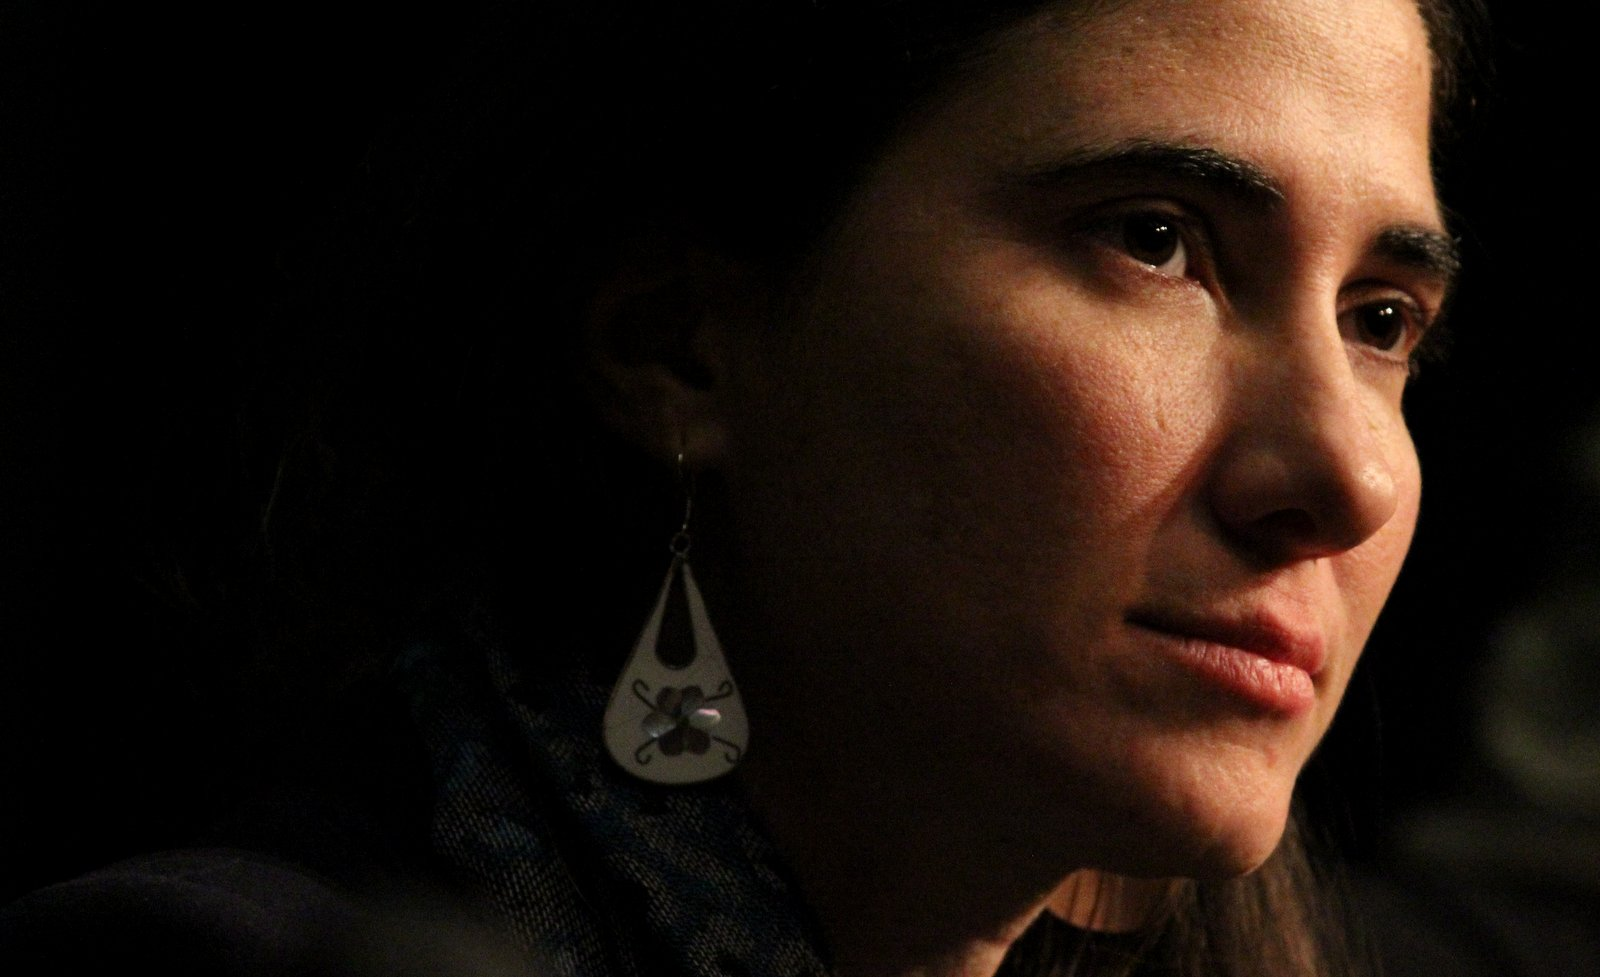 Cuban blogger Yoani Sánchez at Columbia Journalism School in New York. By Tracey Eaton